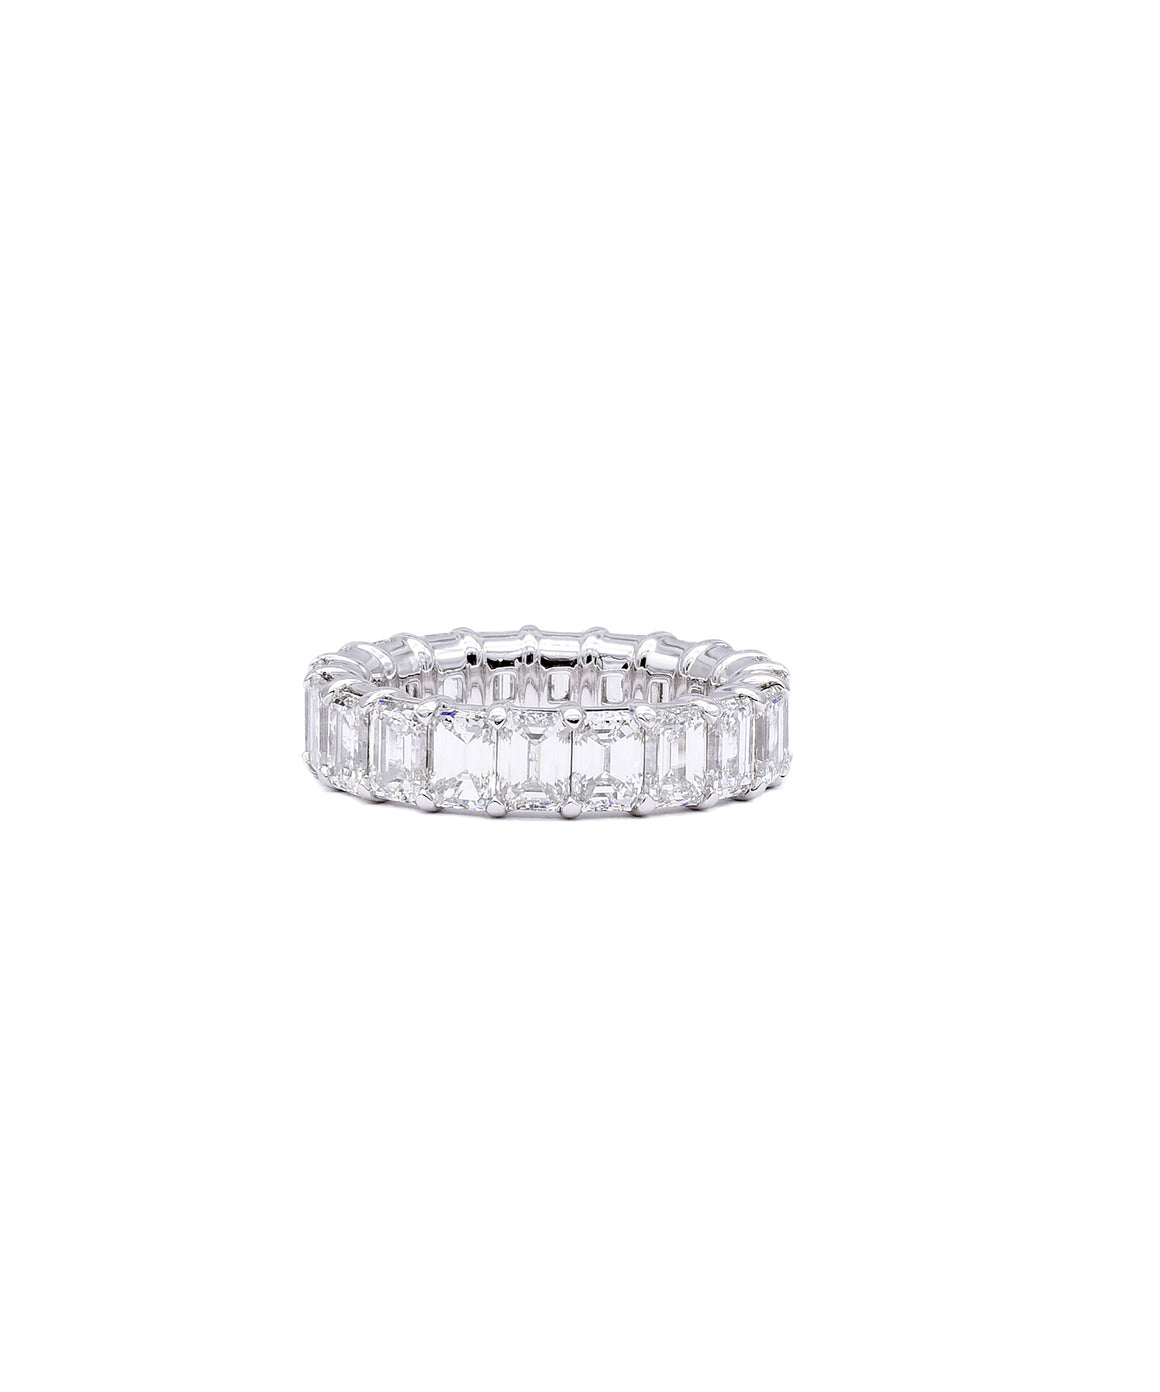 Eternity Band with Emerald Cut Diamonds